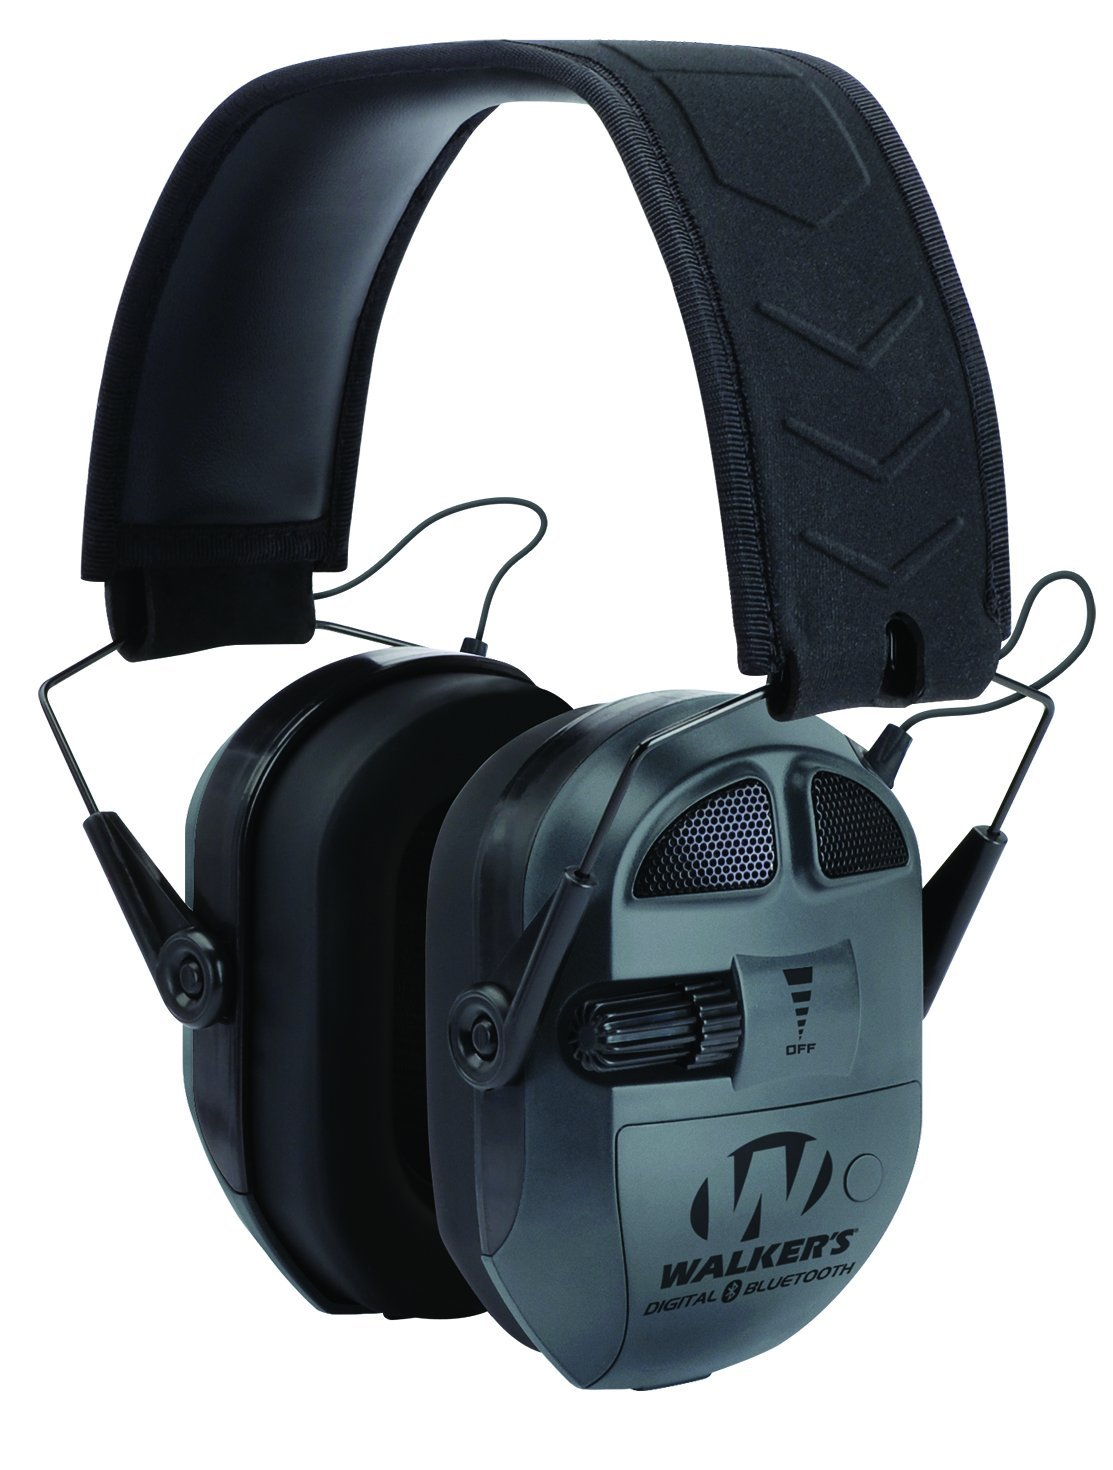 Walker's Ultimate Digital Quad Connect Muff with Bluetooth, Black